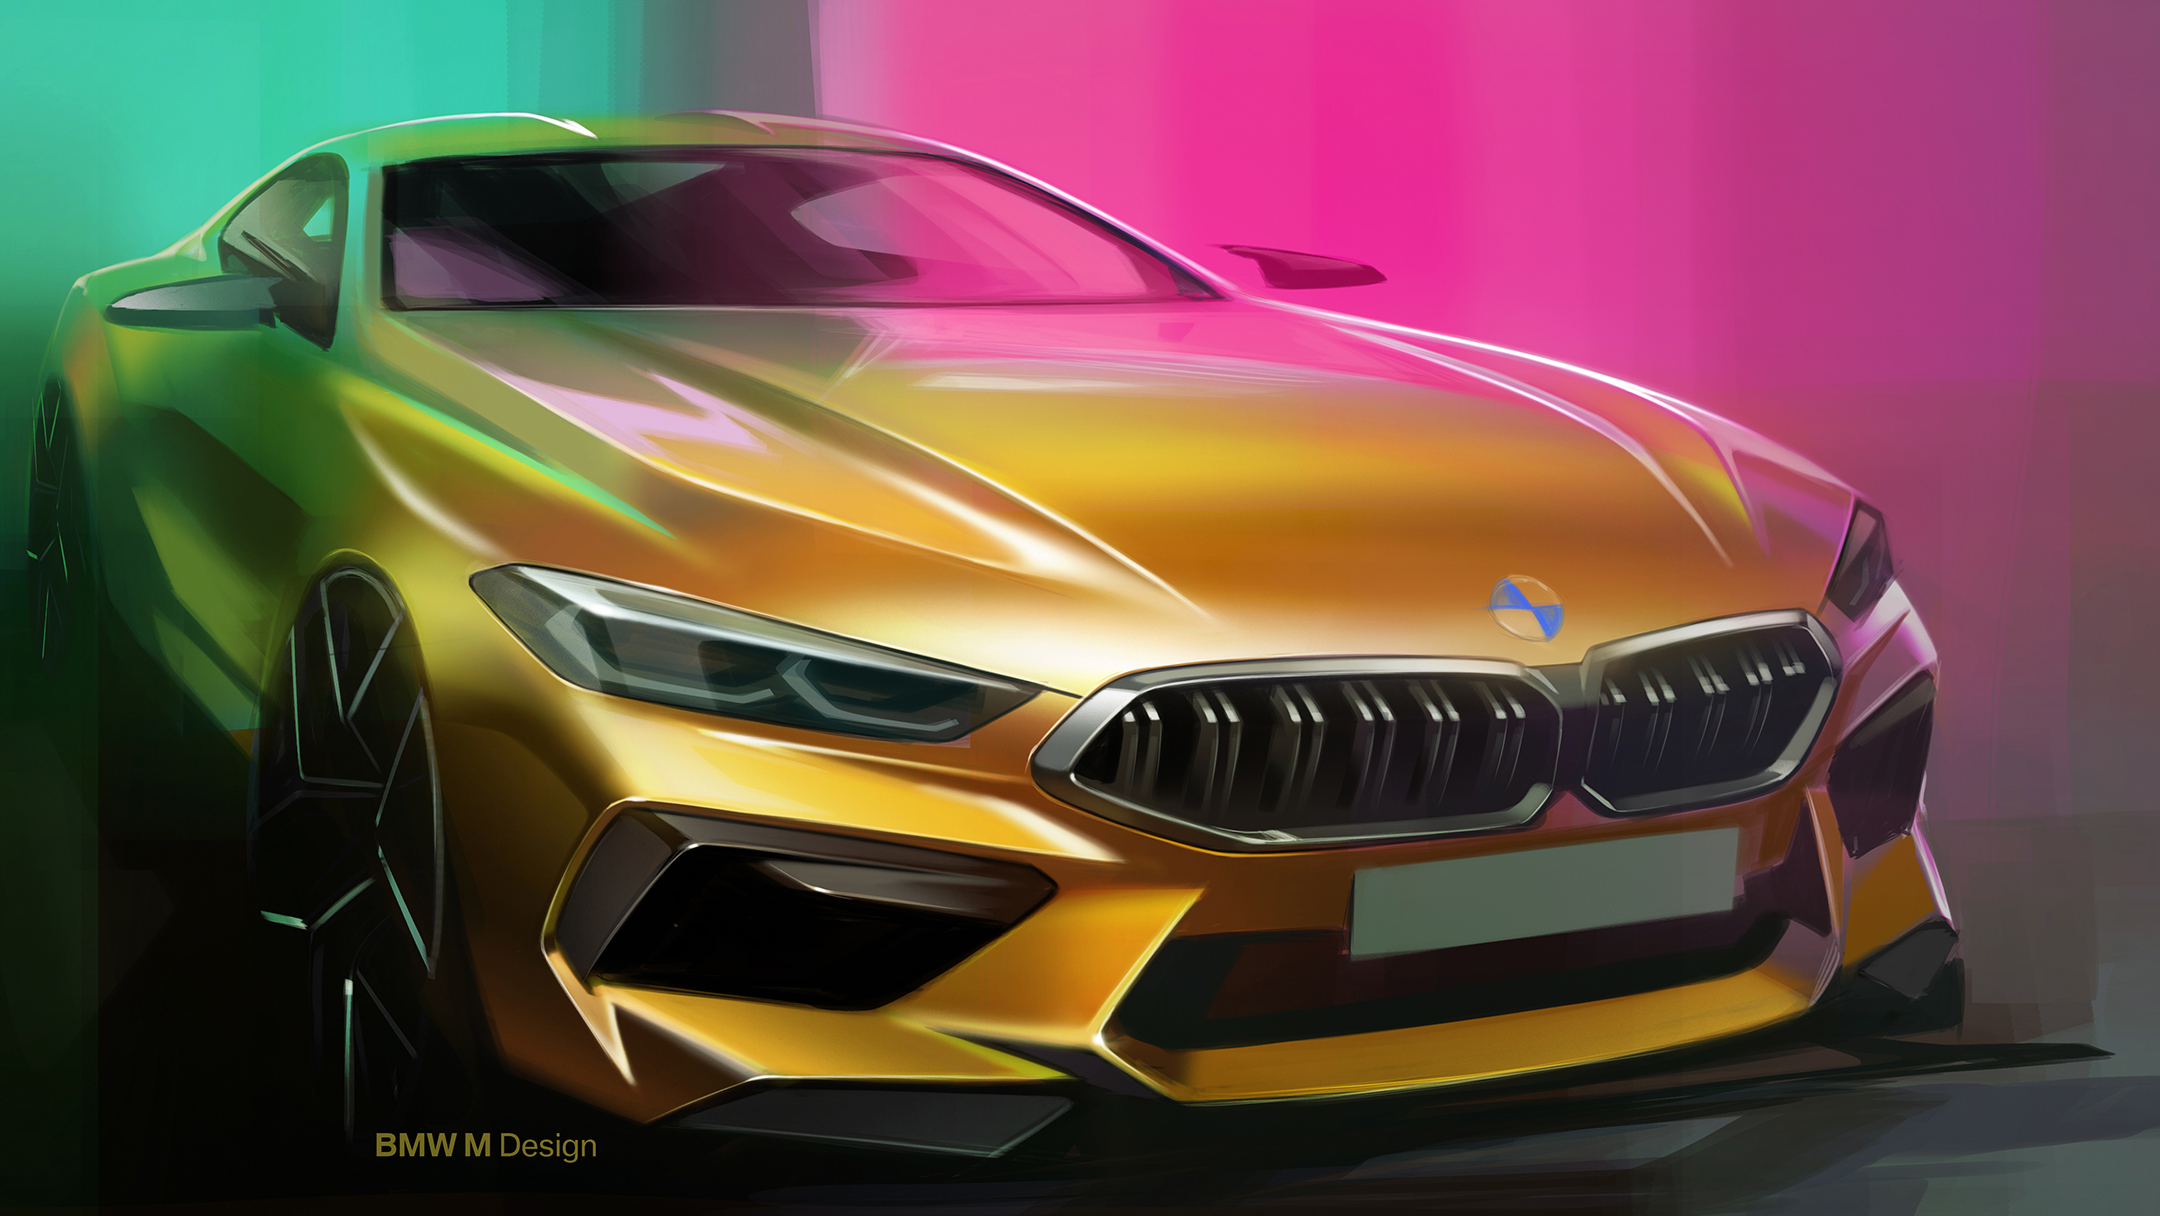 BMW M8 Competition Coupe - 2019 - front / avant - sketch design